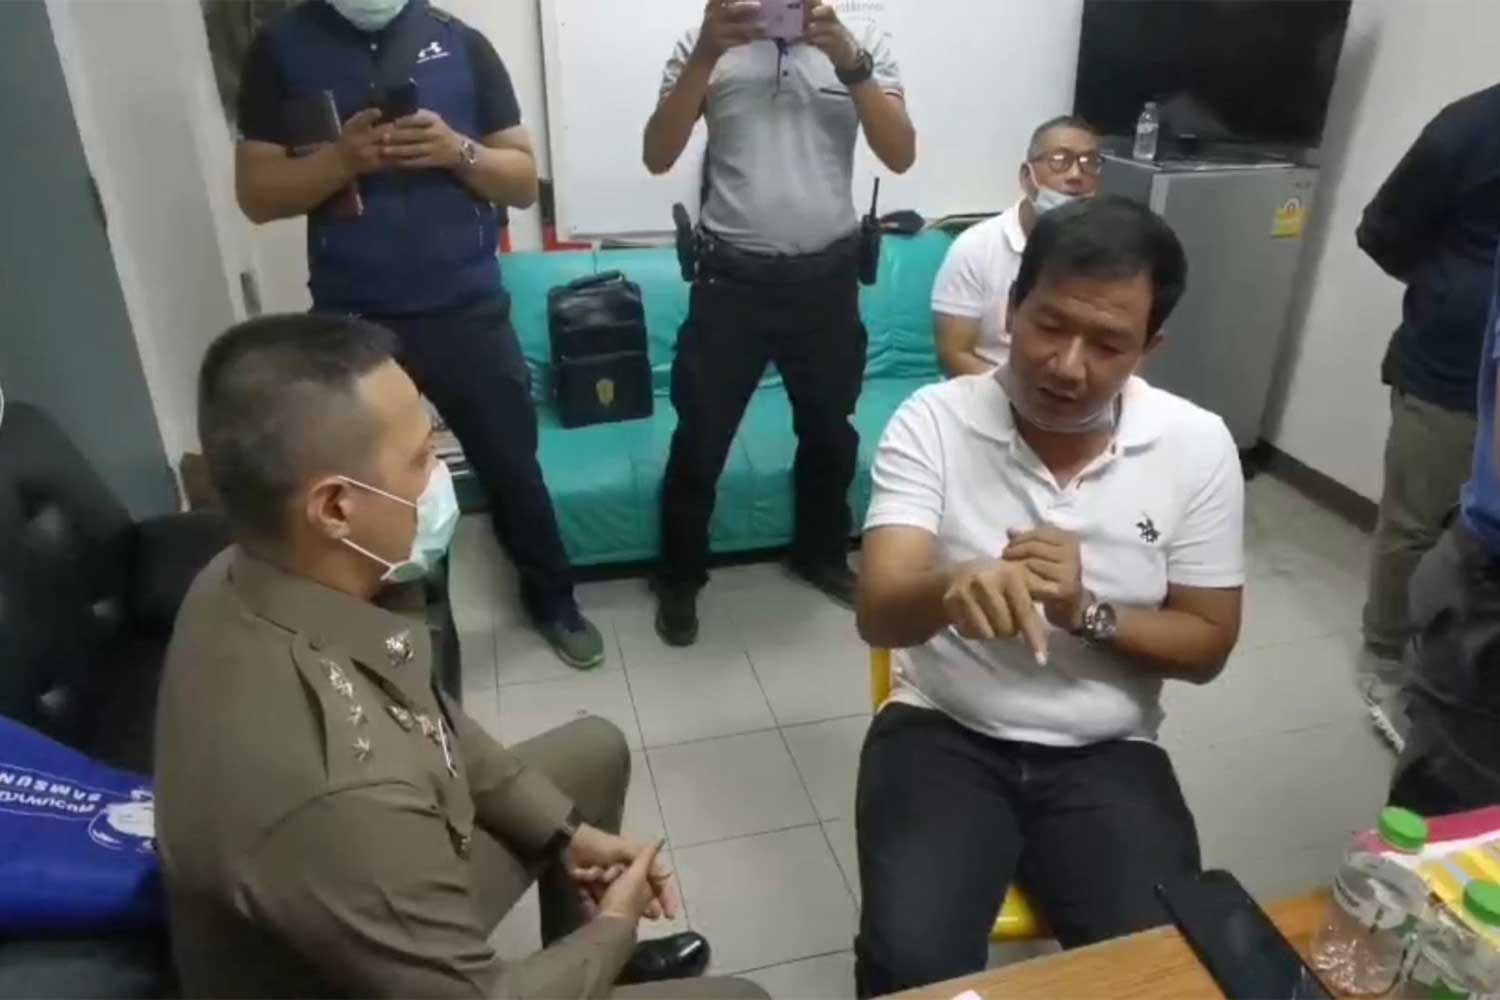 Thawatchai Ruengrit, 41, white T-shirt, turns himself to Pol Col Akkhawut Thaneerat, chief of Hat Yai police, in Songkhla on Thursday, following a shooting in which one man was killed and two others wounded on Wednesday night. (Photo: Assawin Pakkawan)